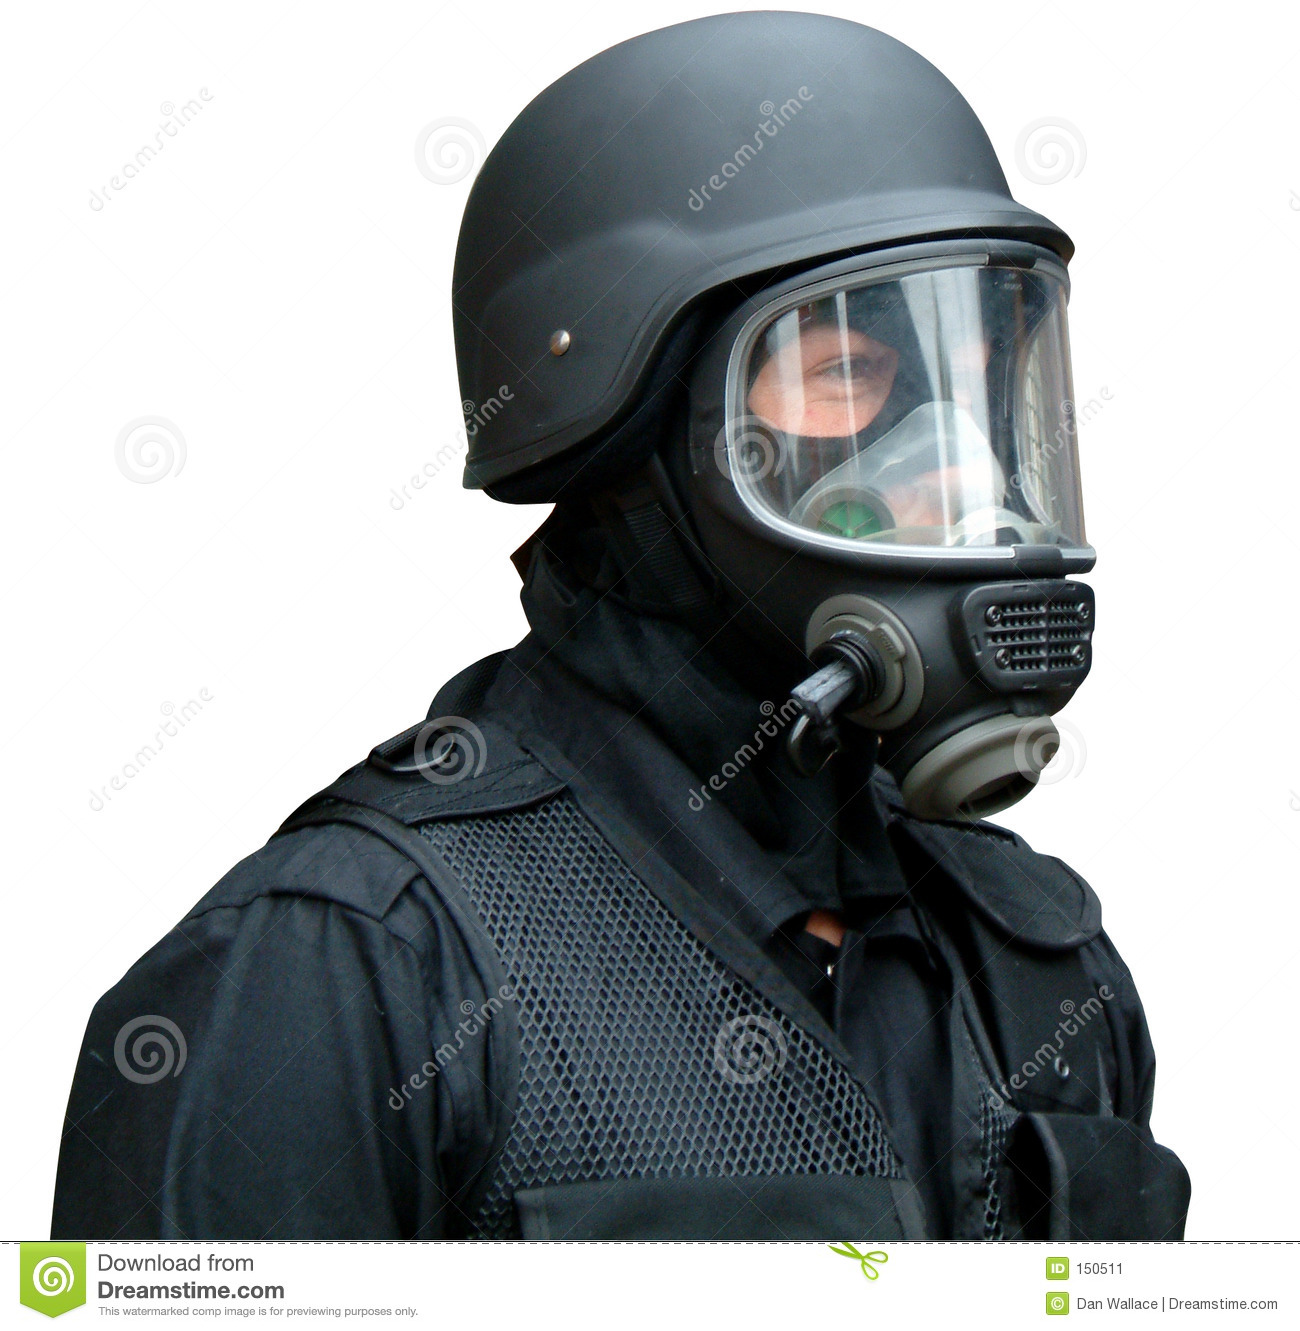 Gas Prices In Florida >> Gas Mask And Helmet Stock Image - Image: 150511